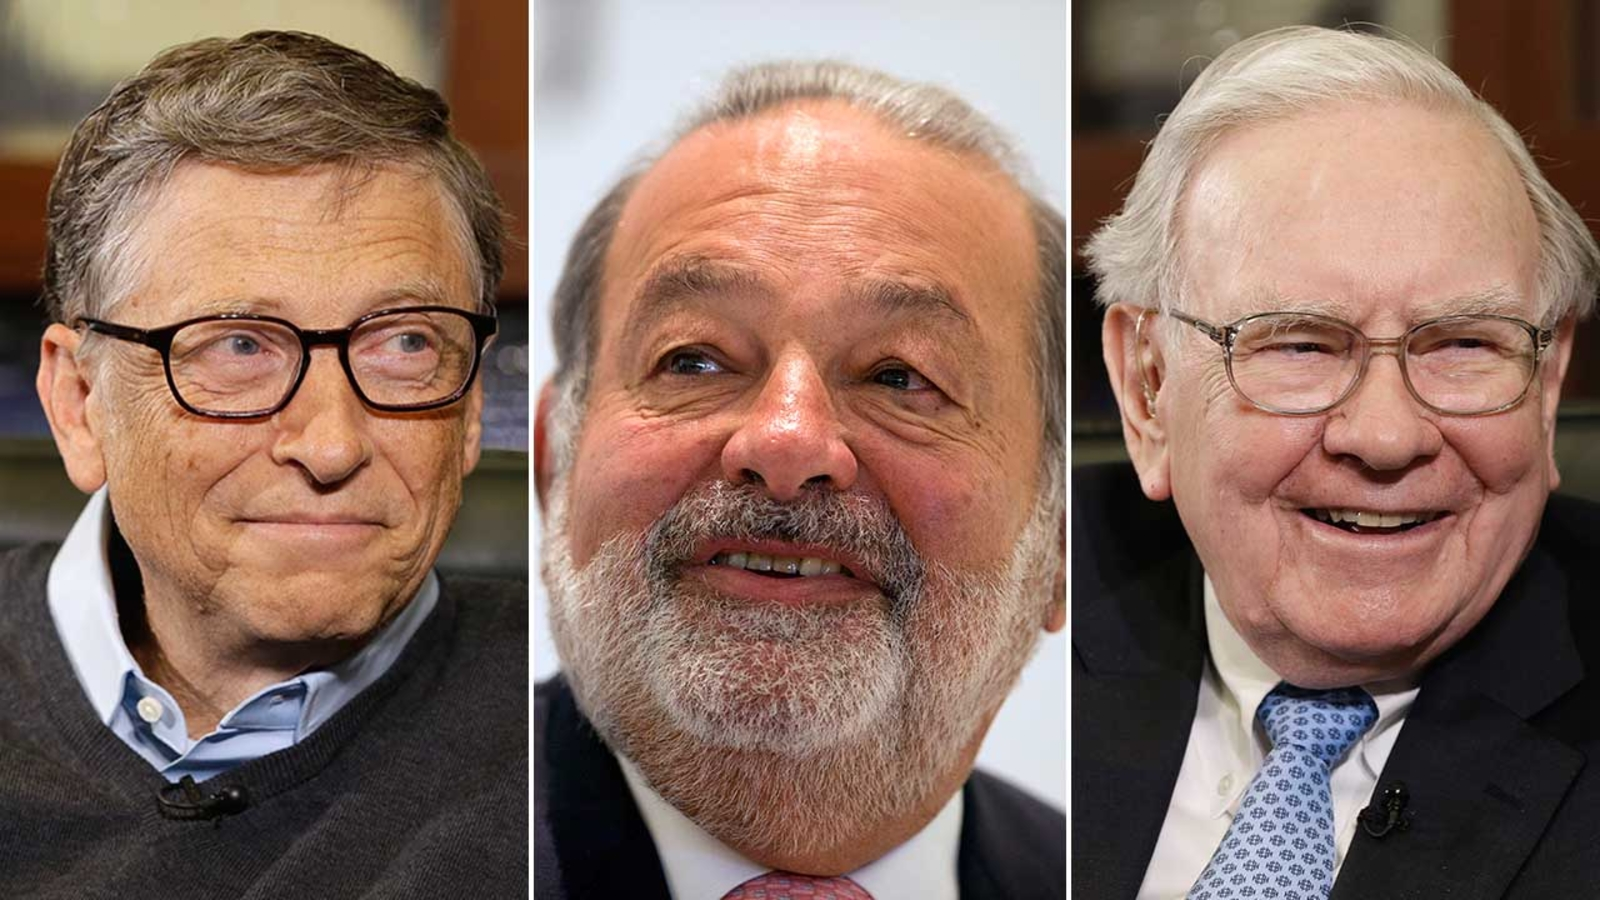 PHOTOS: Forbes releases 2015 list of worlds richest